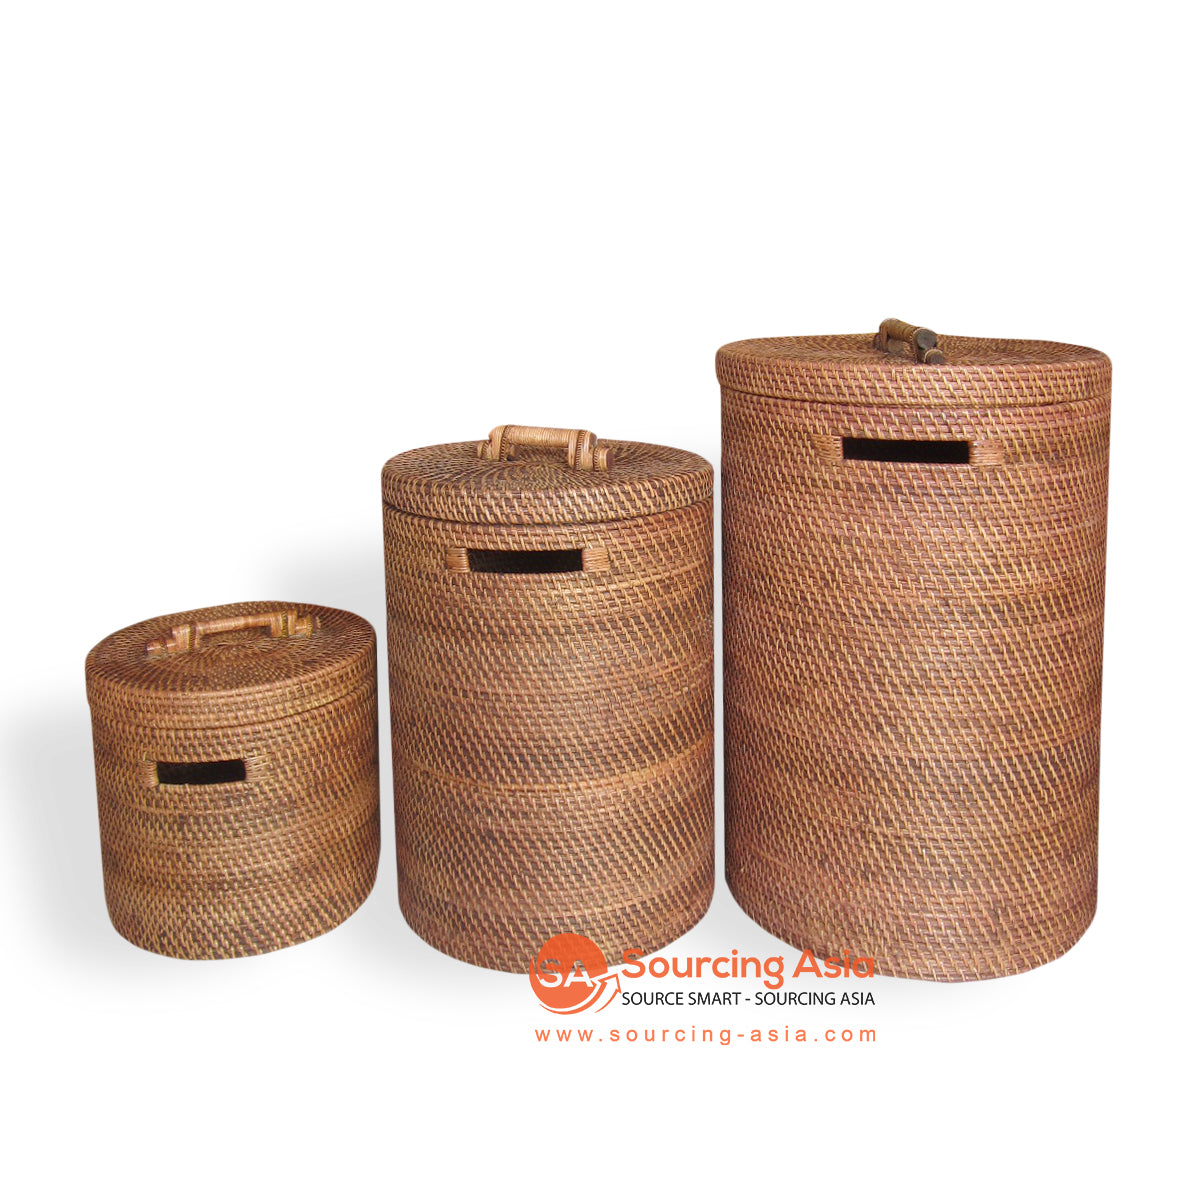 ALI030 SET OF 3 LAUNDRY BASKETS